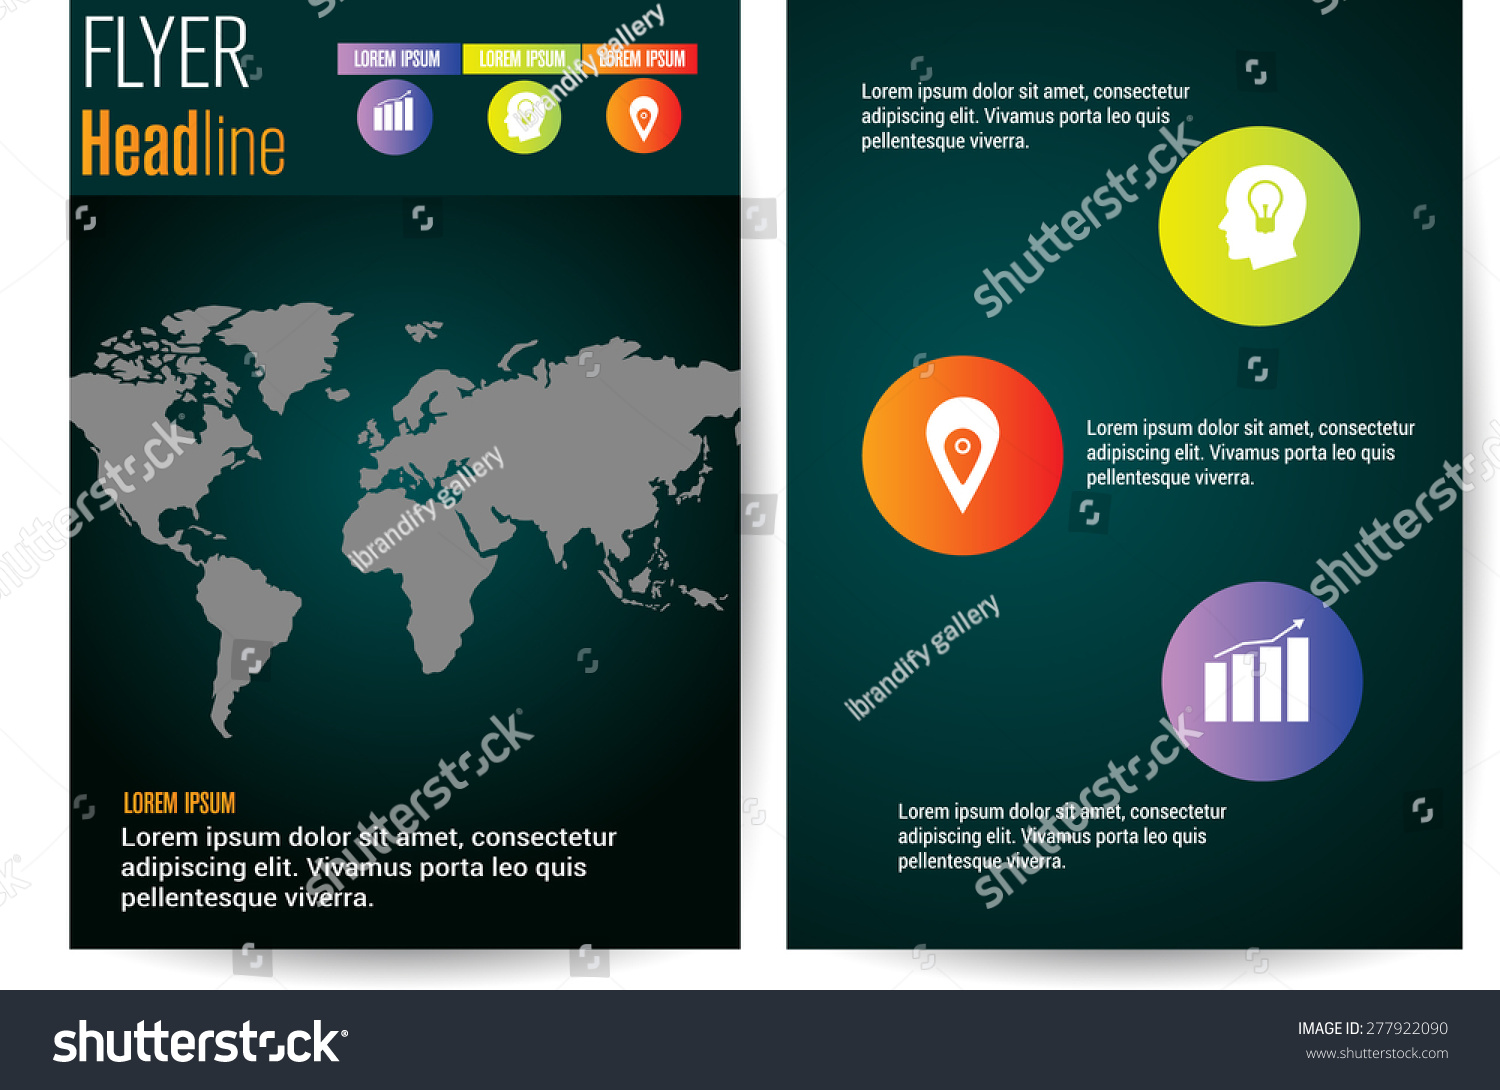 professional business flyer brochure template corporate stock professional business flyer brochure template or corporate banner design world map cover page big